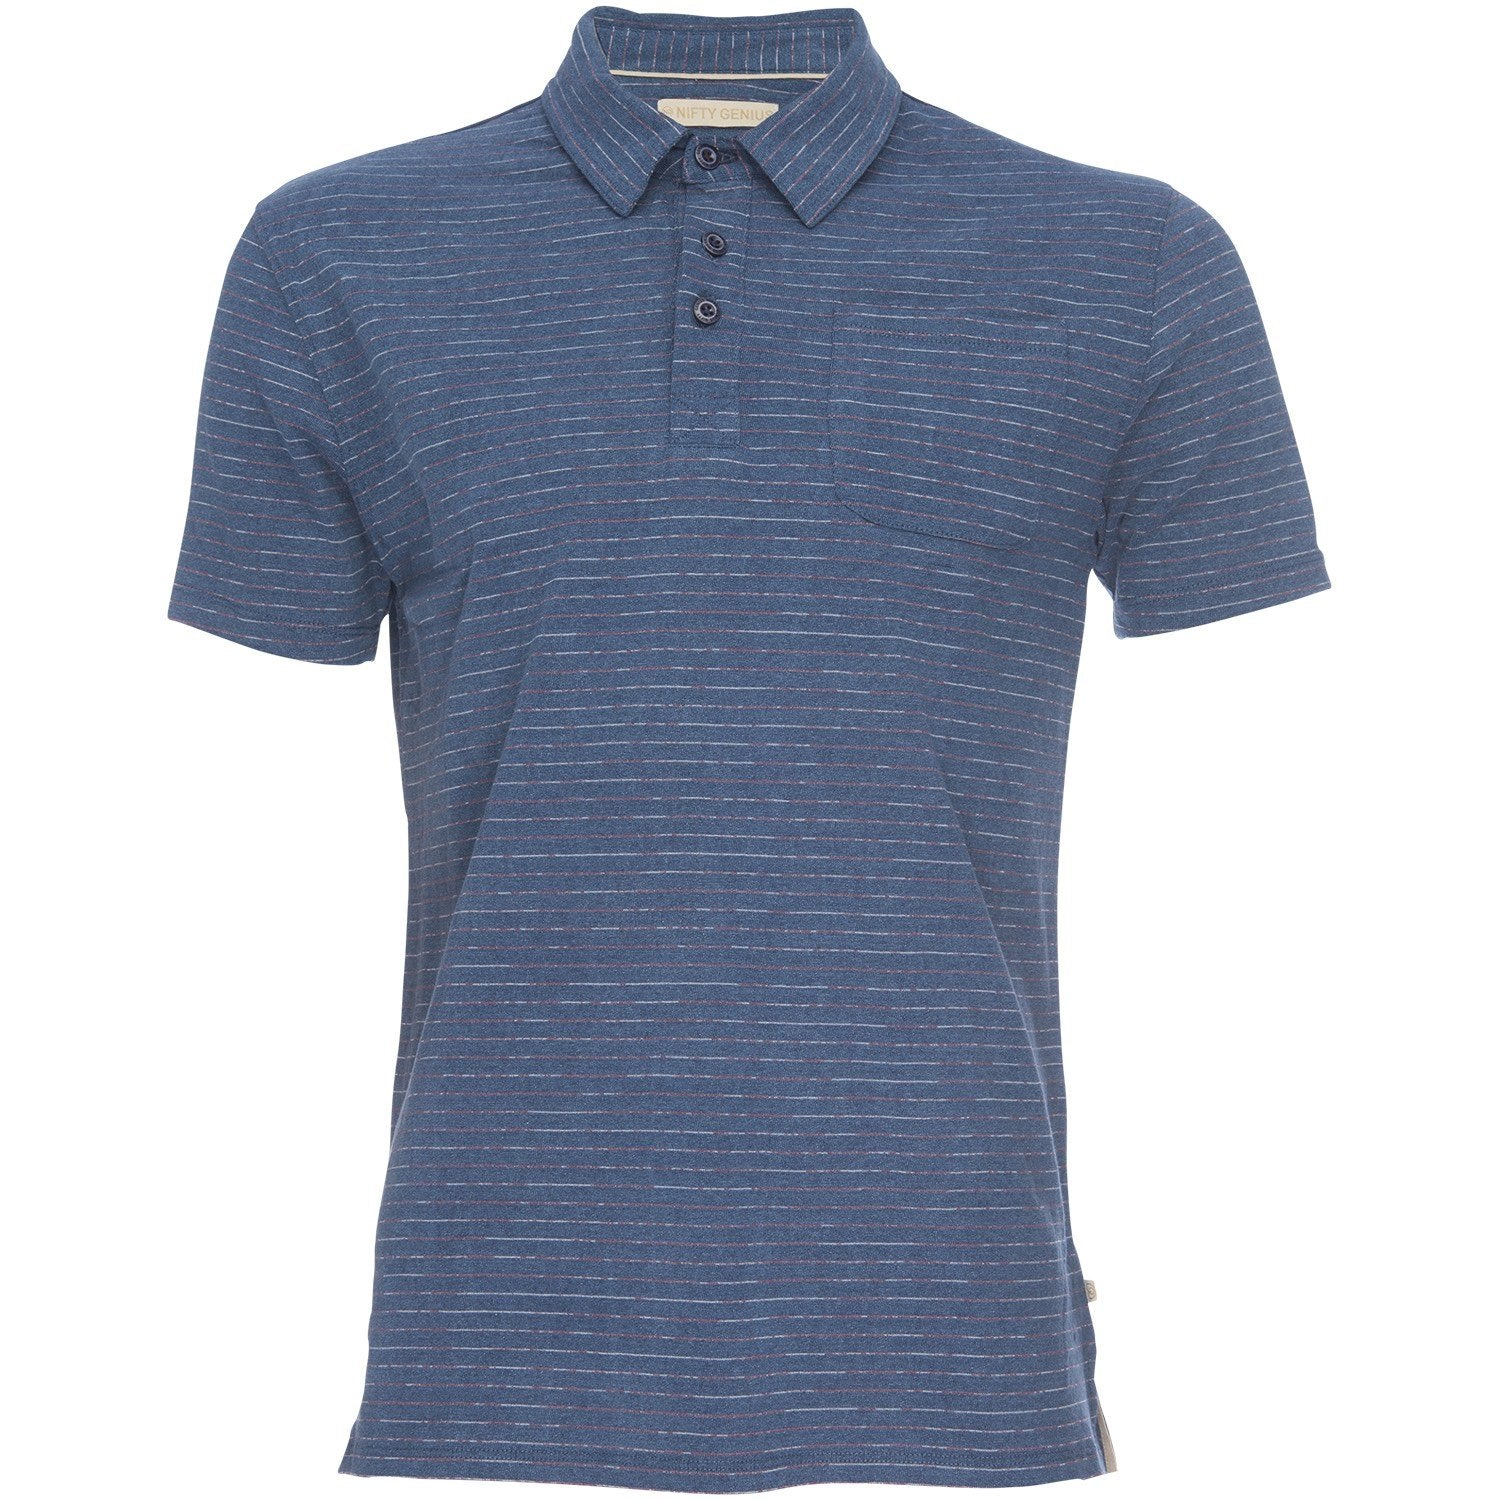 Nicholas Polo in Navy/Red Stripe